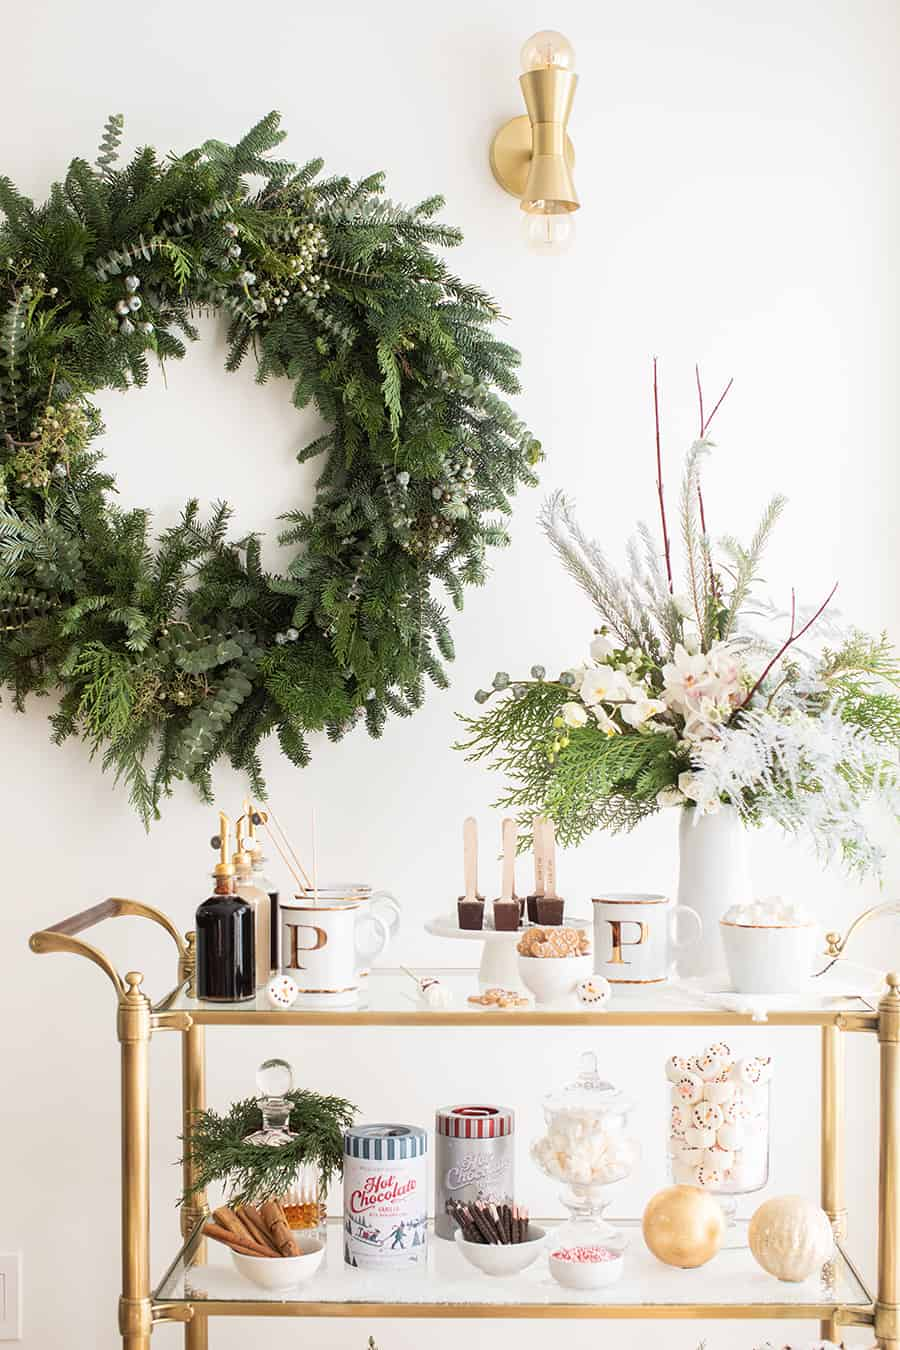 Hot chocolate bar with a Christmas wreath, mugs, syrups, flowers and holiday hot chocolate all placed on a brass bar cart.